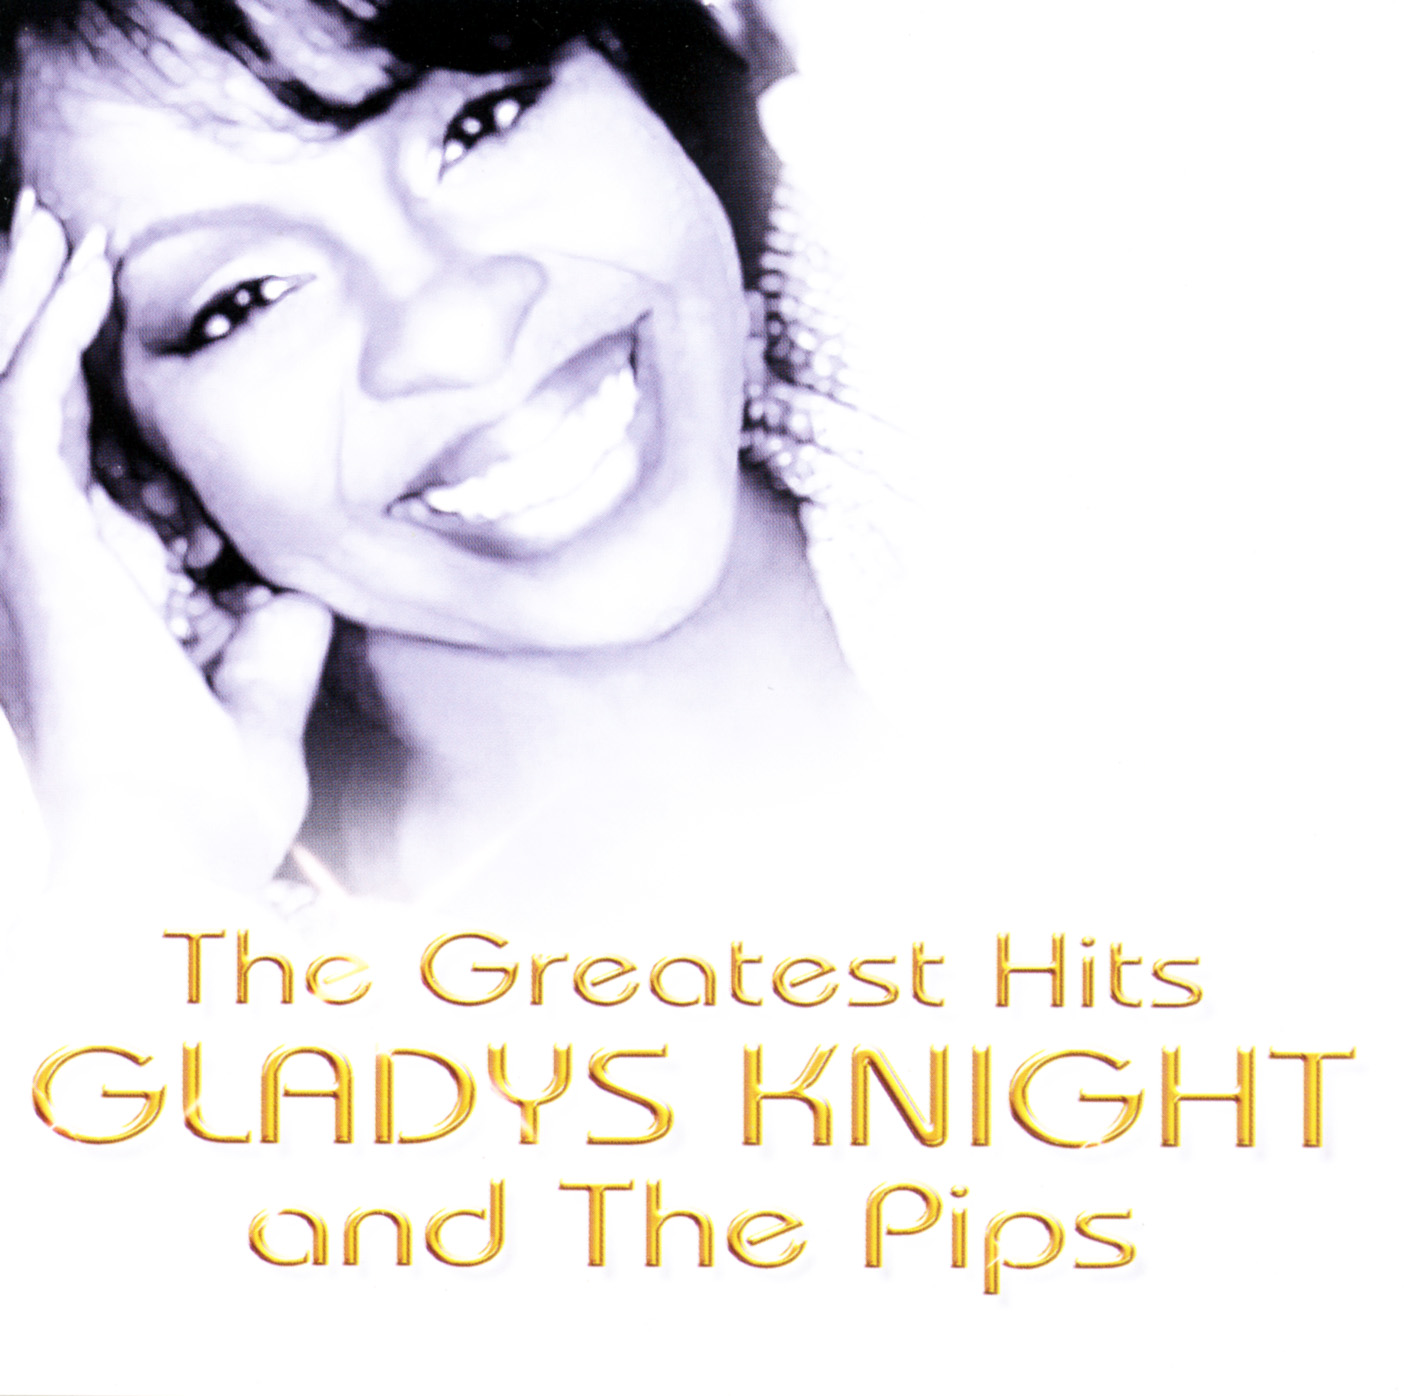 Gladys Knight And The Pips - The Greatest Hits